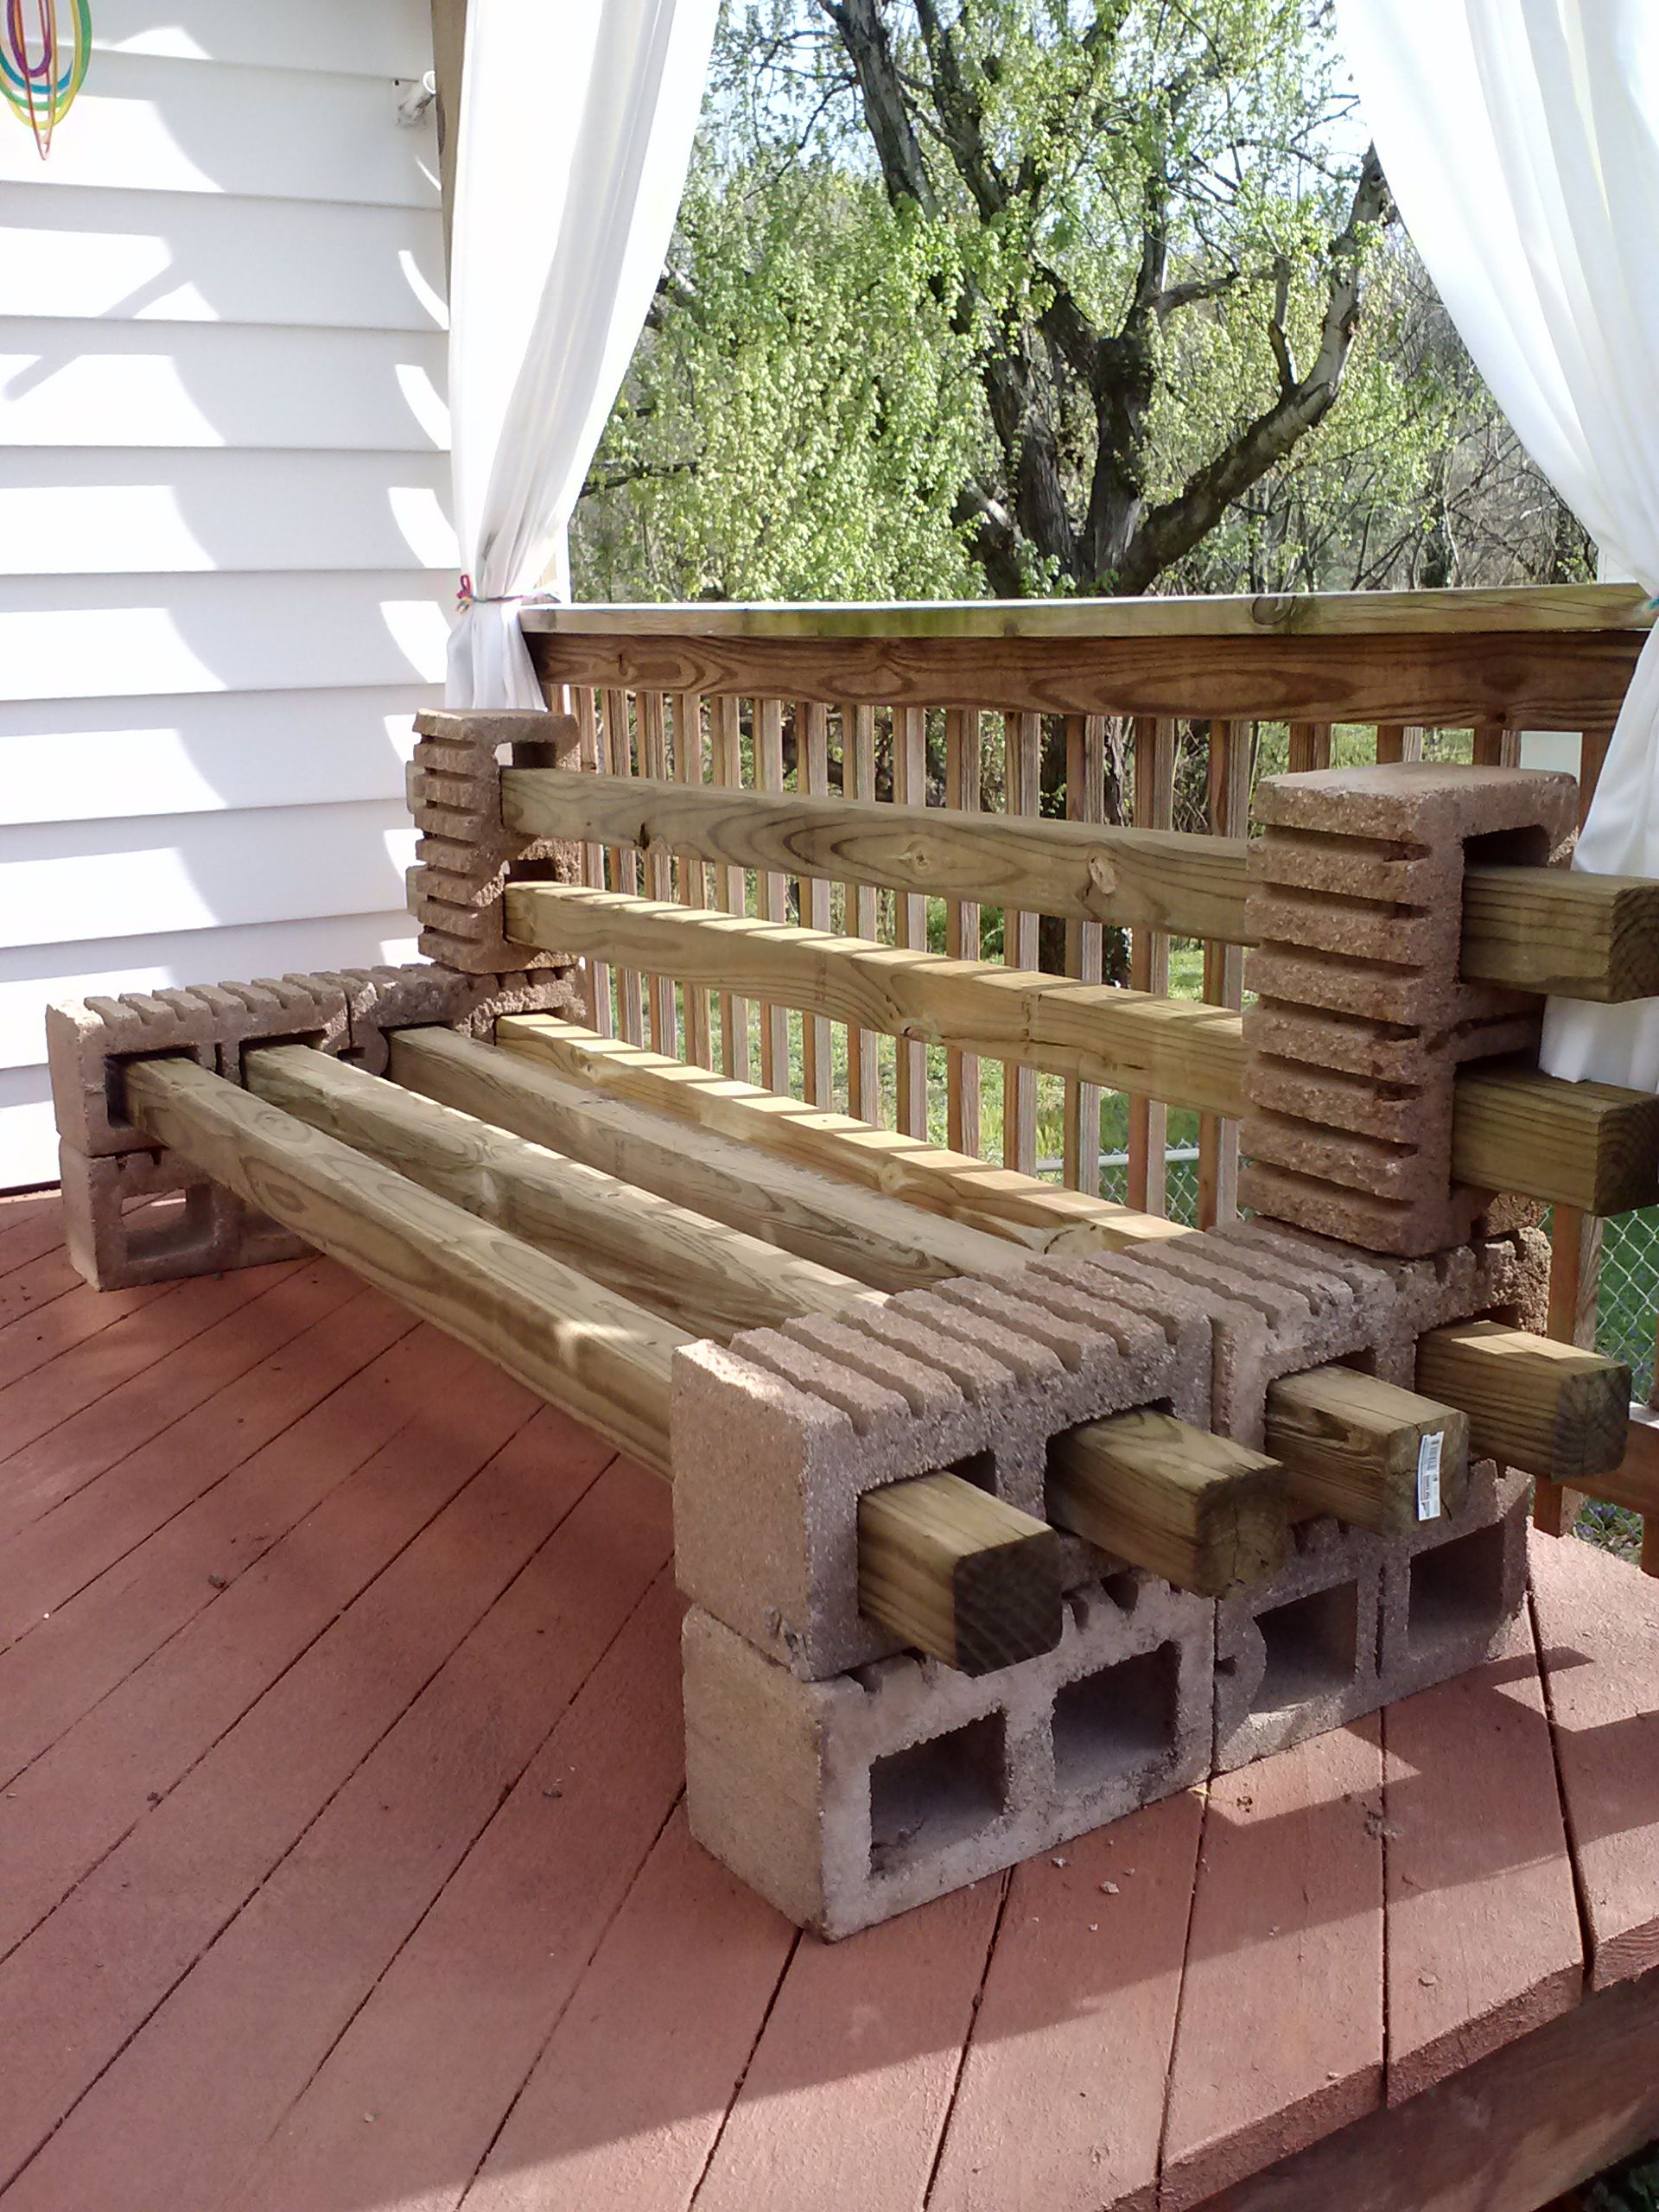 Incredible Cinder Block Bench Cinder Block Furniture Backyard Evergreenethics Interior Chair Design Evergreenethicsorg